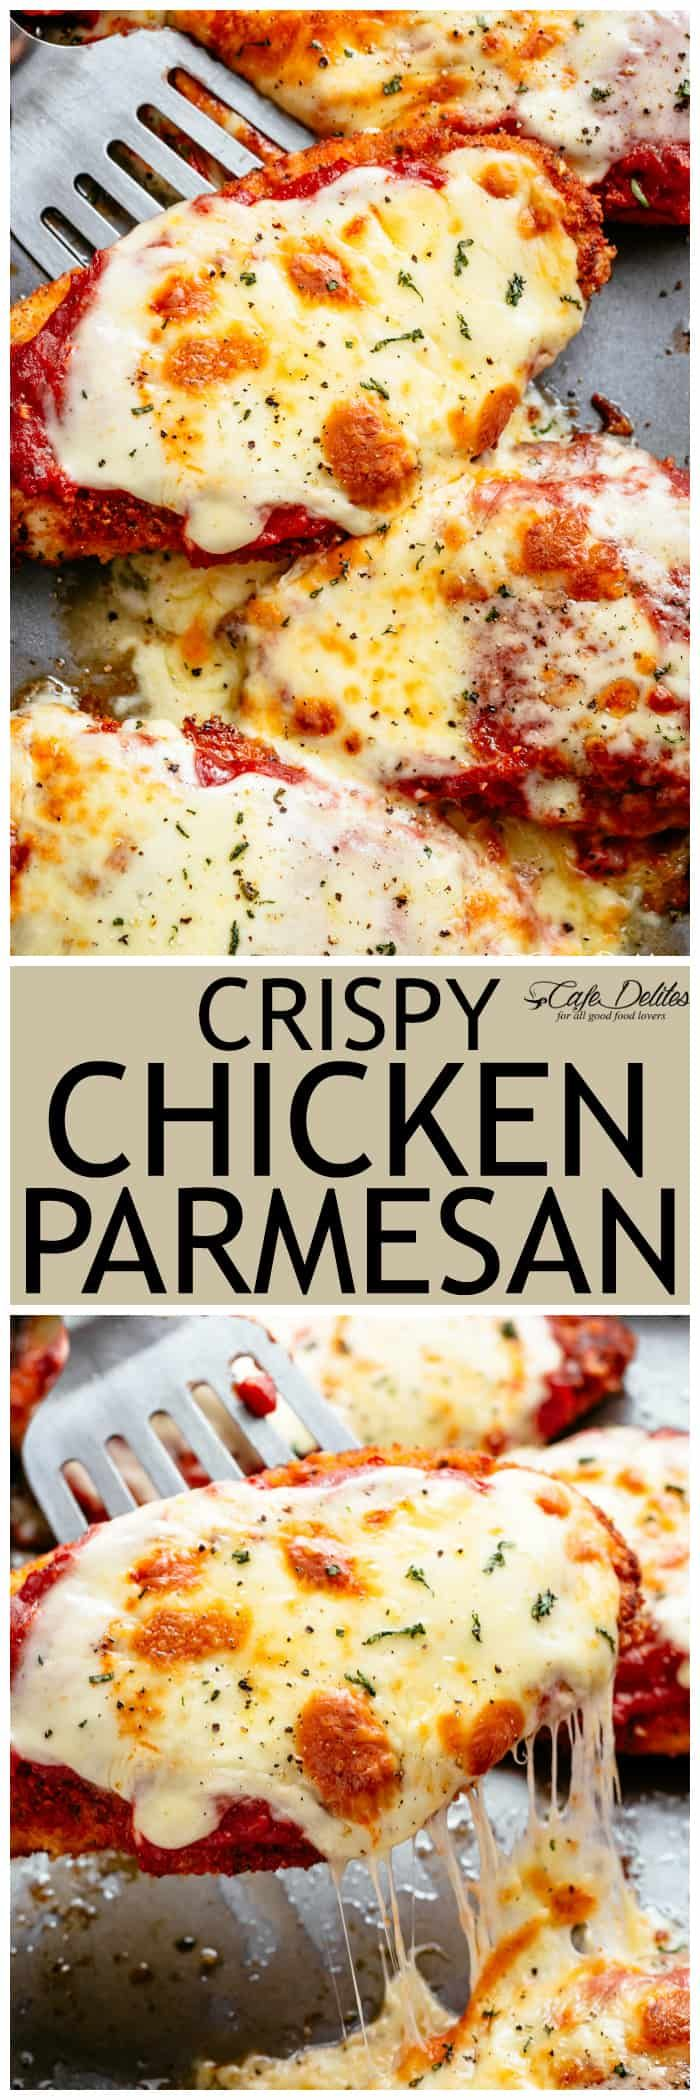 The Best Crispy Chicken Parmesan - Cafe Delites #chickenparmesan